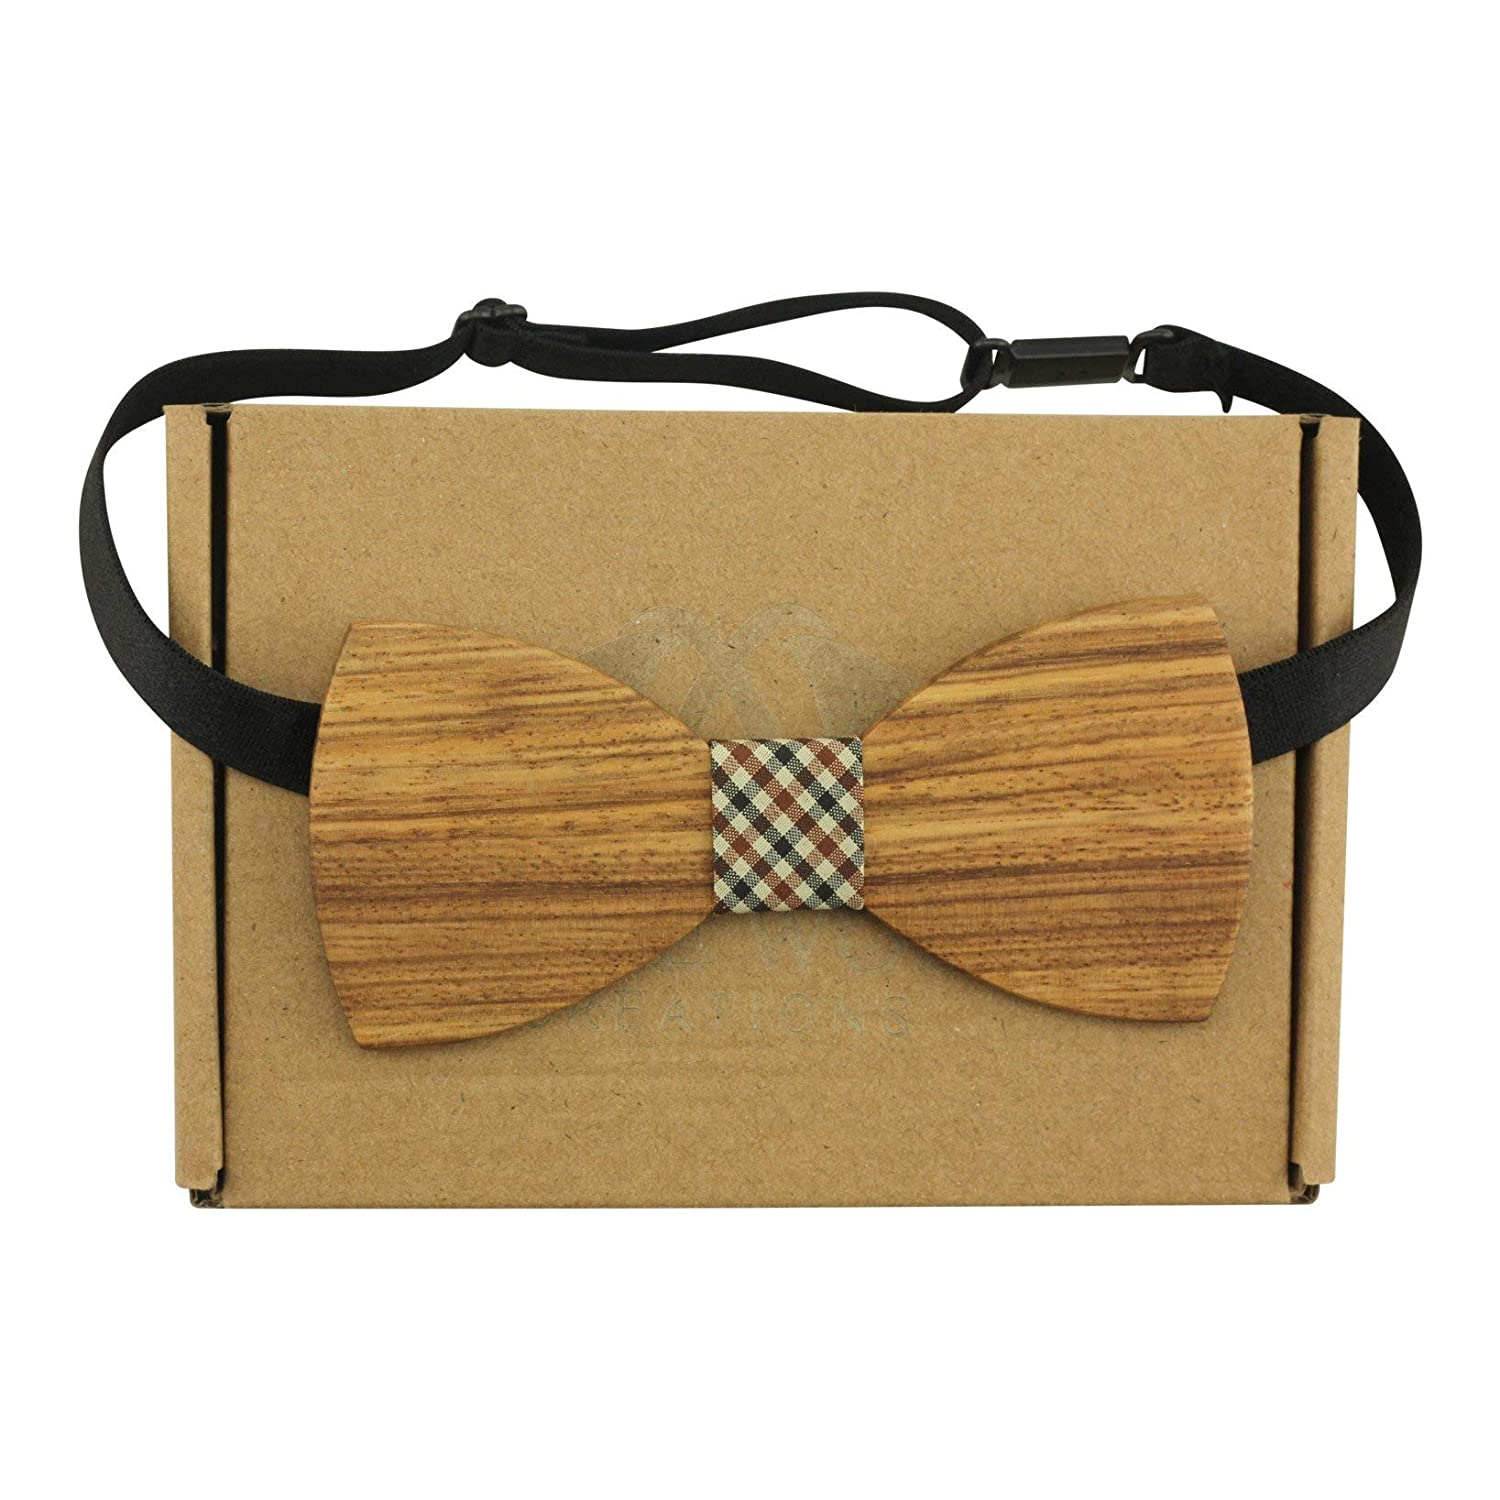 Adult-Sized Large Round Wooden Bow Tie with Brown Denim Centre